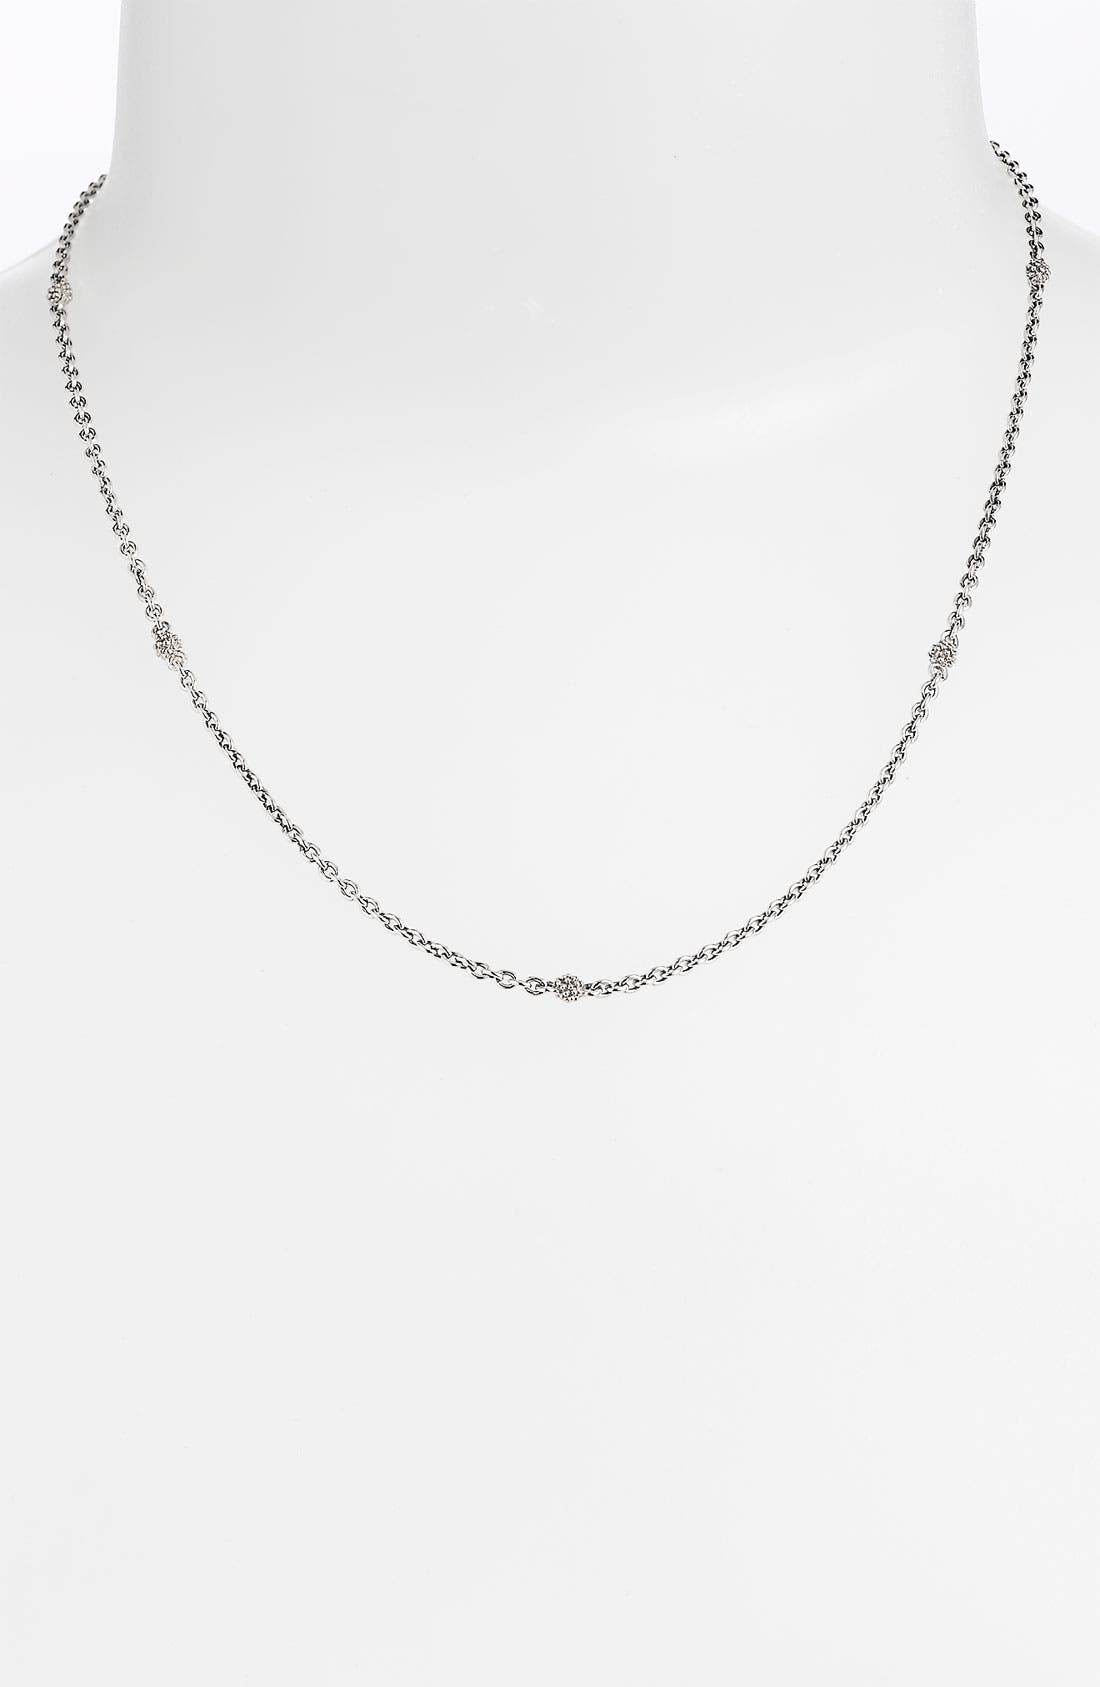 Alternate Image 1 Selected - LAGOS Caviar Station Chain Necklace